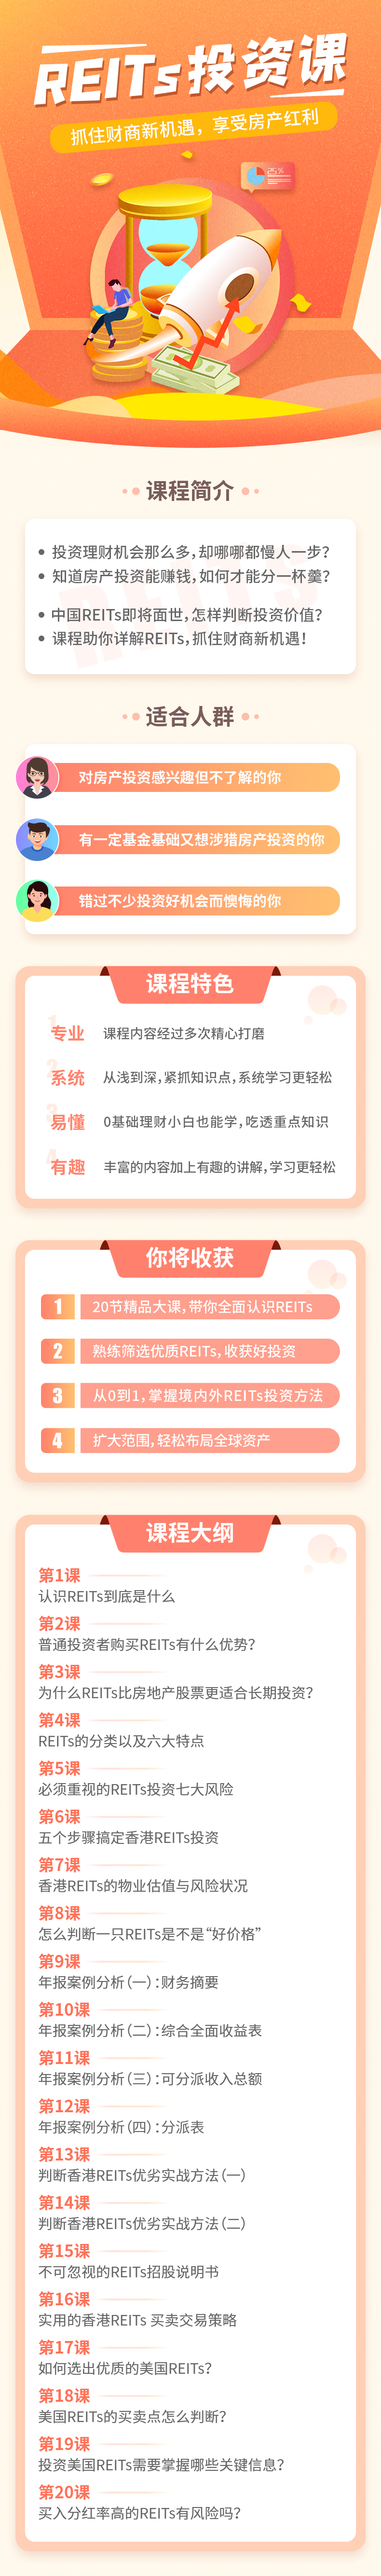 REITs投资实战技巧课.png